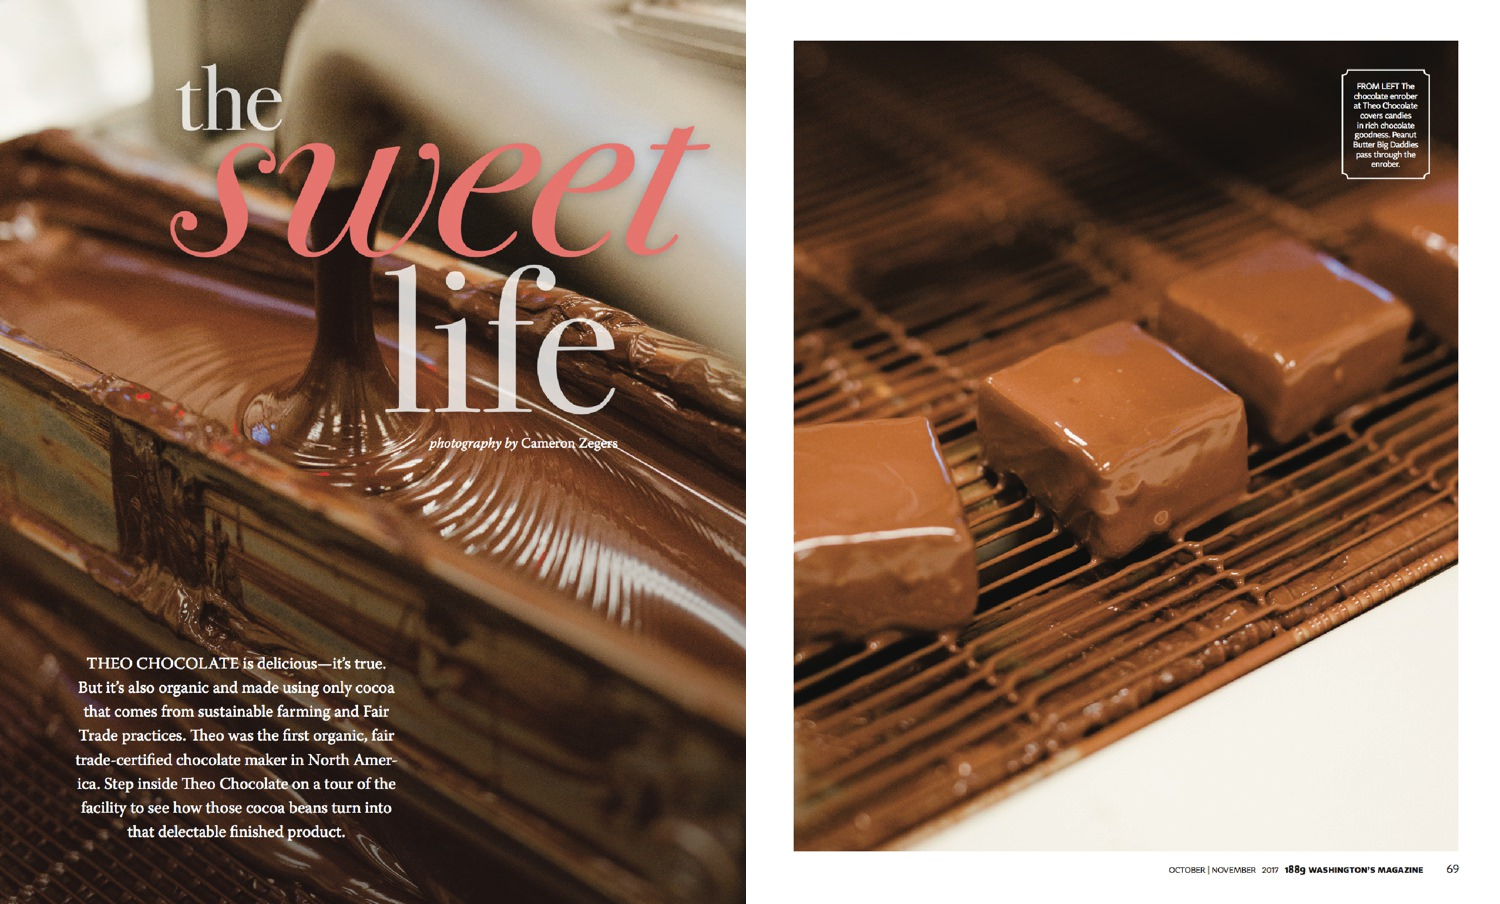 cameron-zegers-theo-chocolate-magazine-washington-seattle.jpg